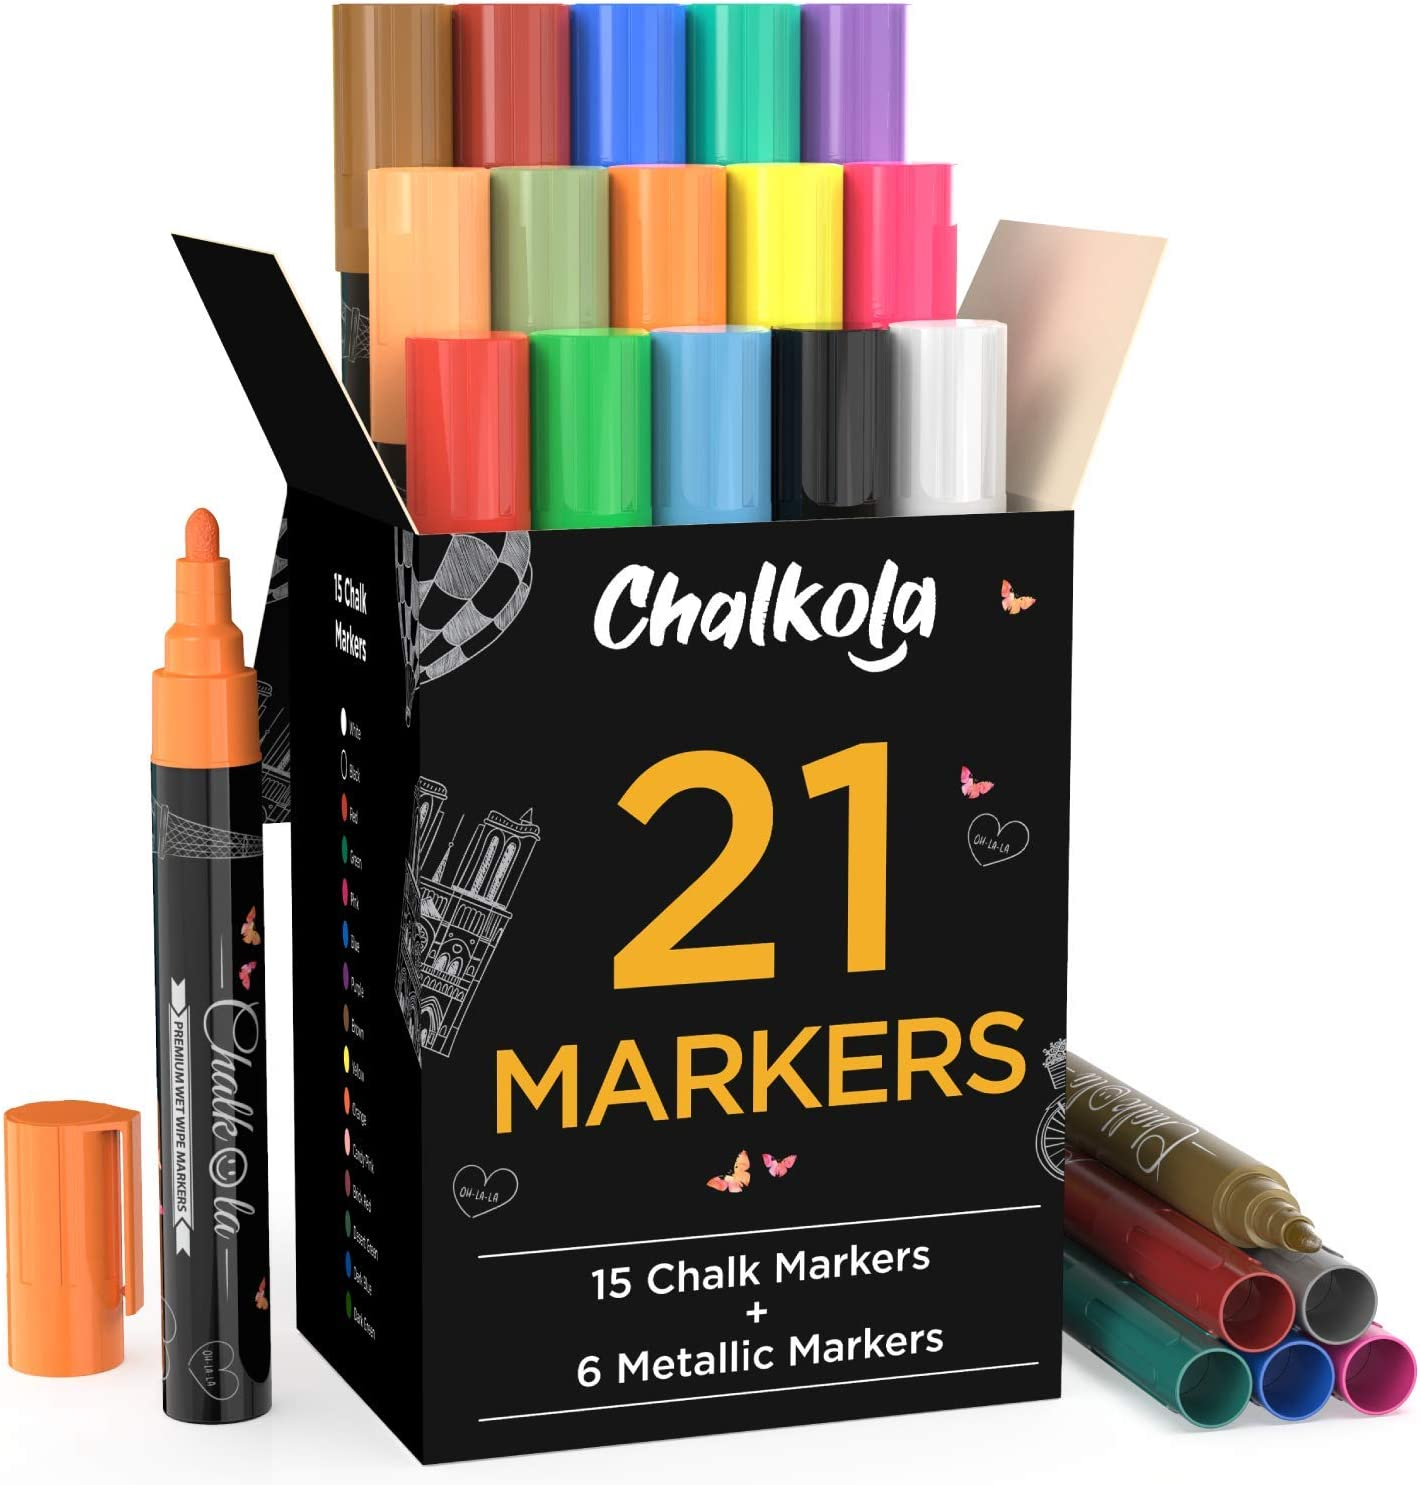 Chalk Markers & Metallic Colors (Pack of 21) Neon Chalk Pens - For Chalkboard, Blackboards, Window, Labels, Bistro, Glass - Wet Wipe Erasable - 6mm Reversible Bullet & Chisel Tip